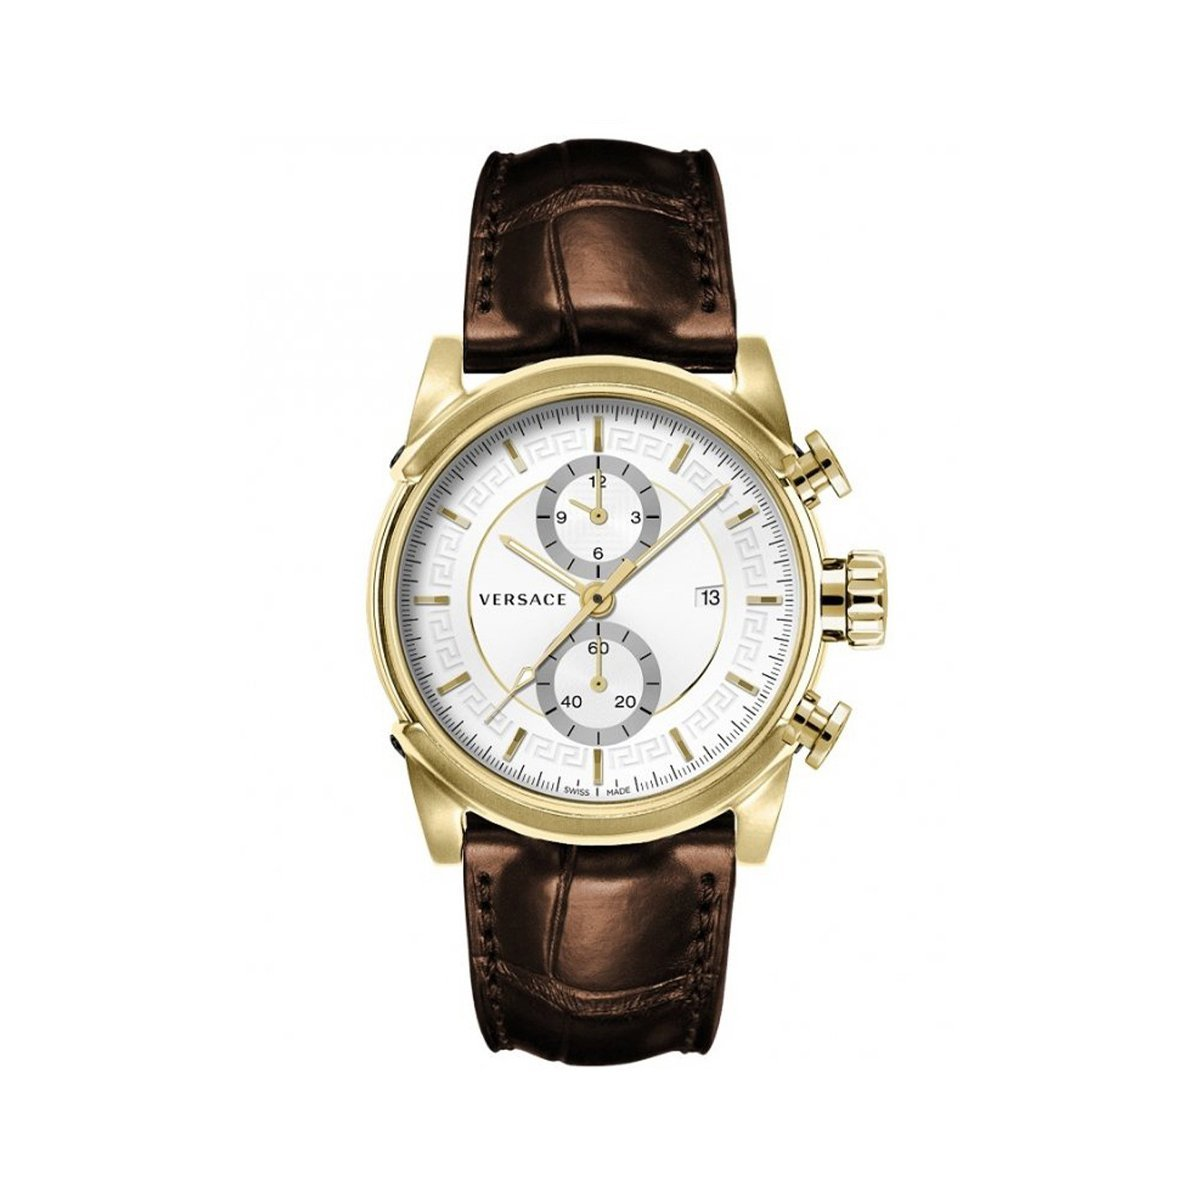 Versace Urban Chronograph White - Watches & Crystals